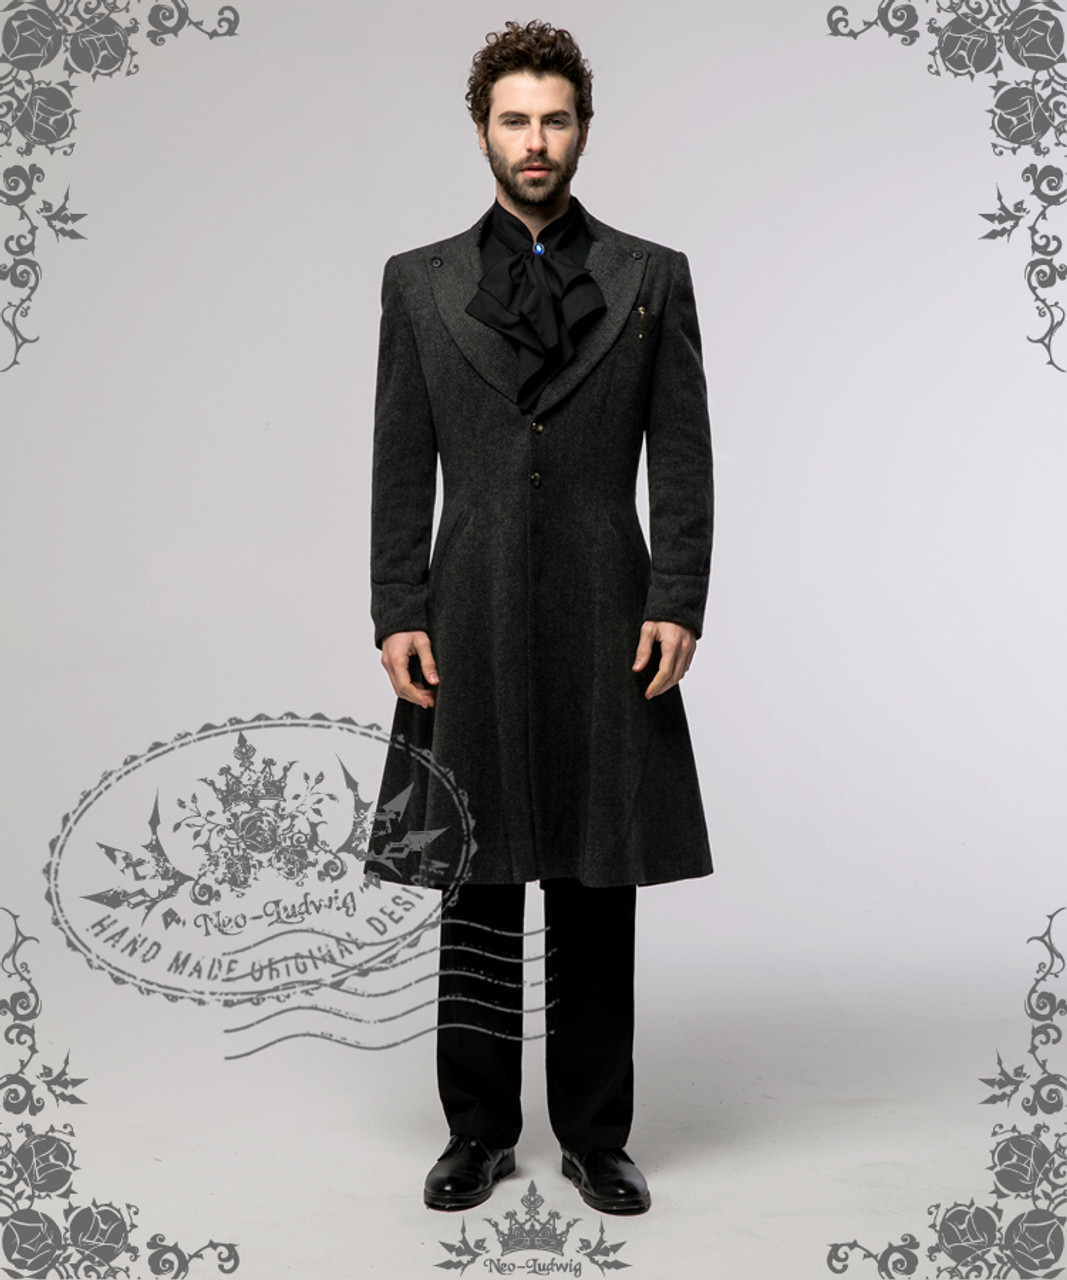 STOCK - Gothic Aristocratic Man 02 (Running) by LienSkullova on ...